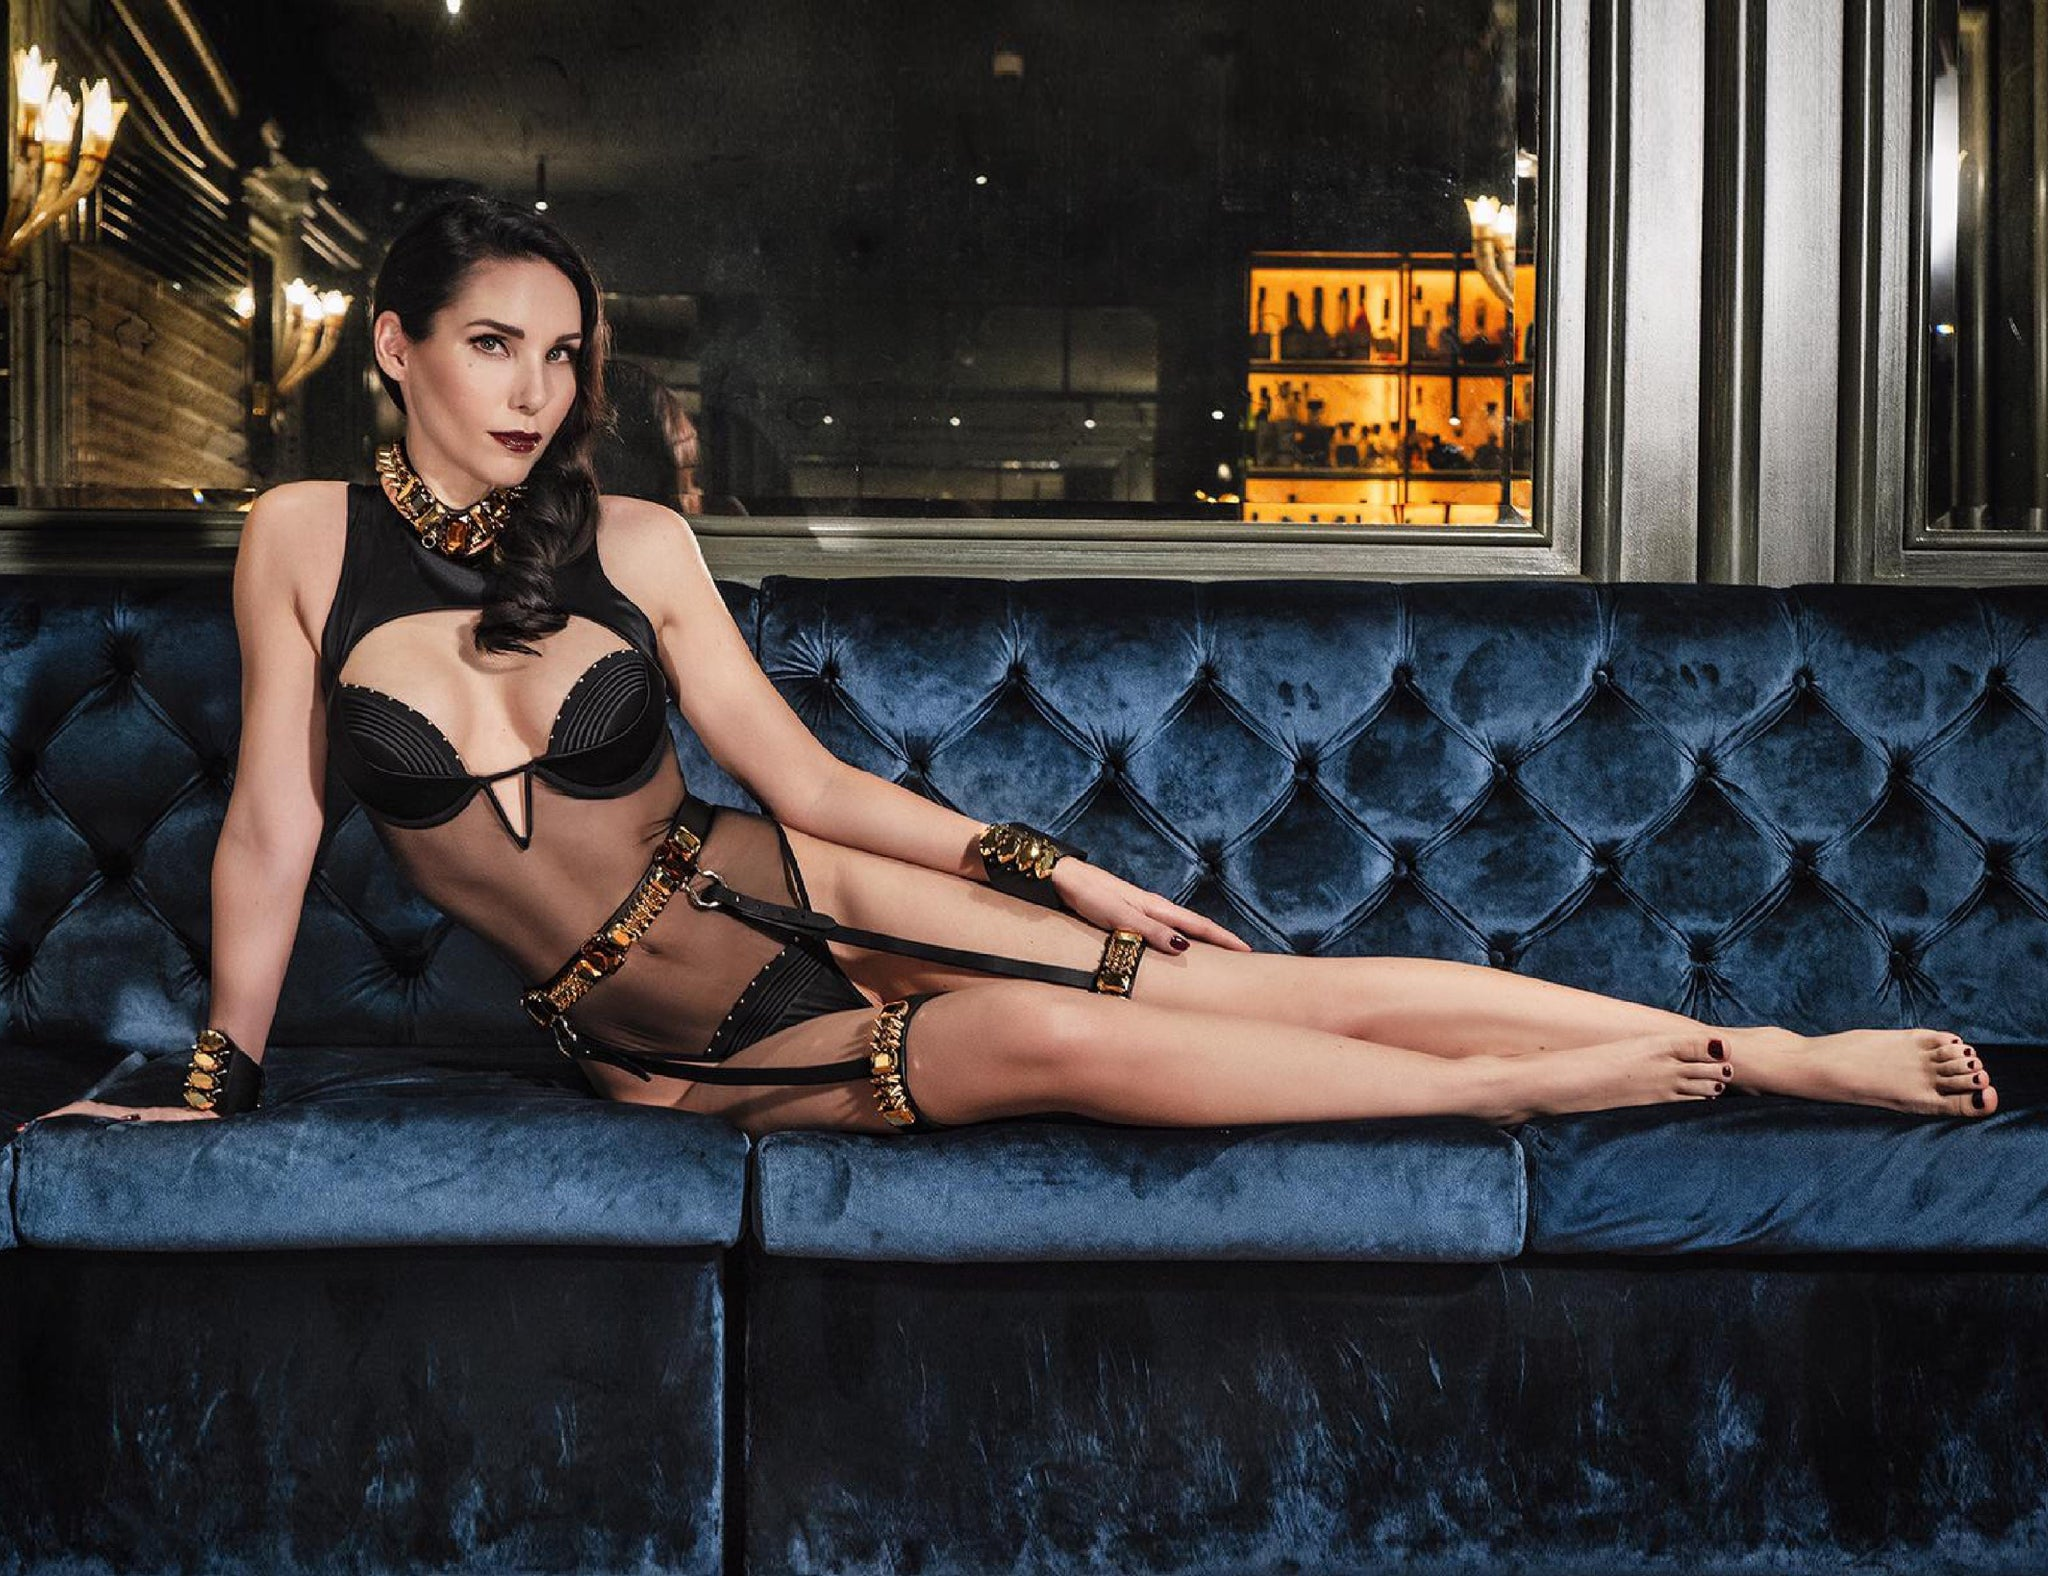 Babooshka Underwired Bodysuit styled with Luxury Lingerie accessories